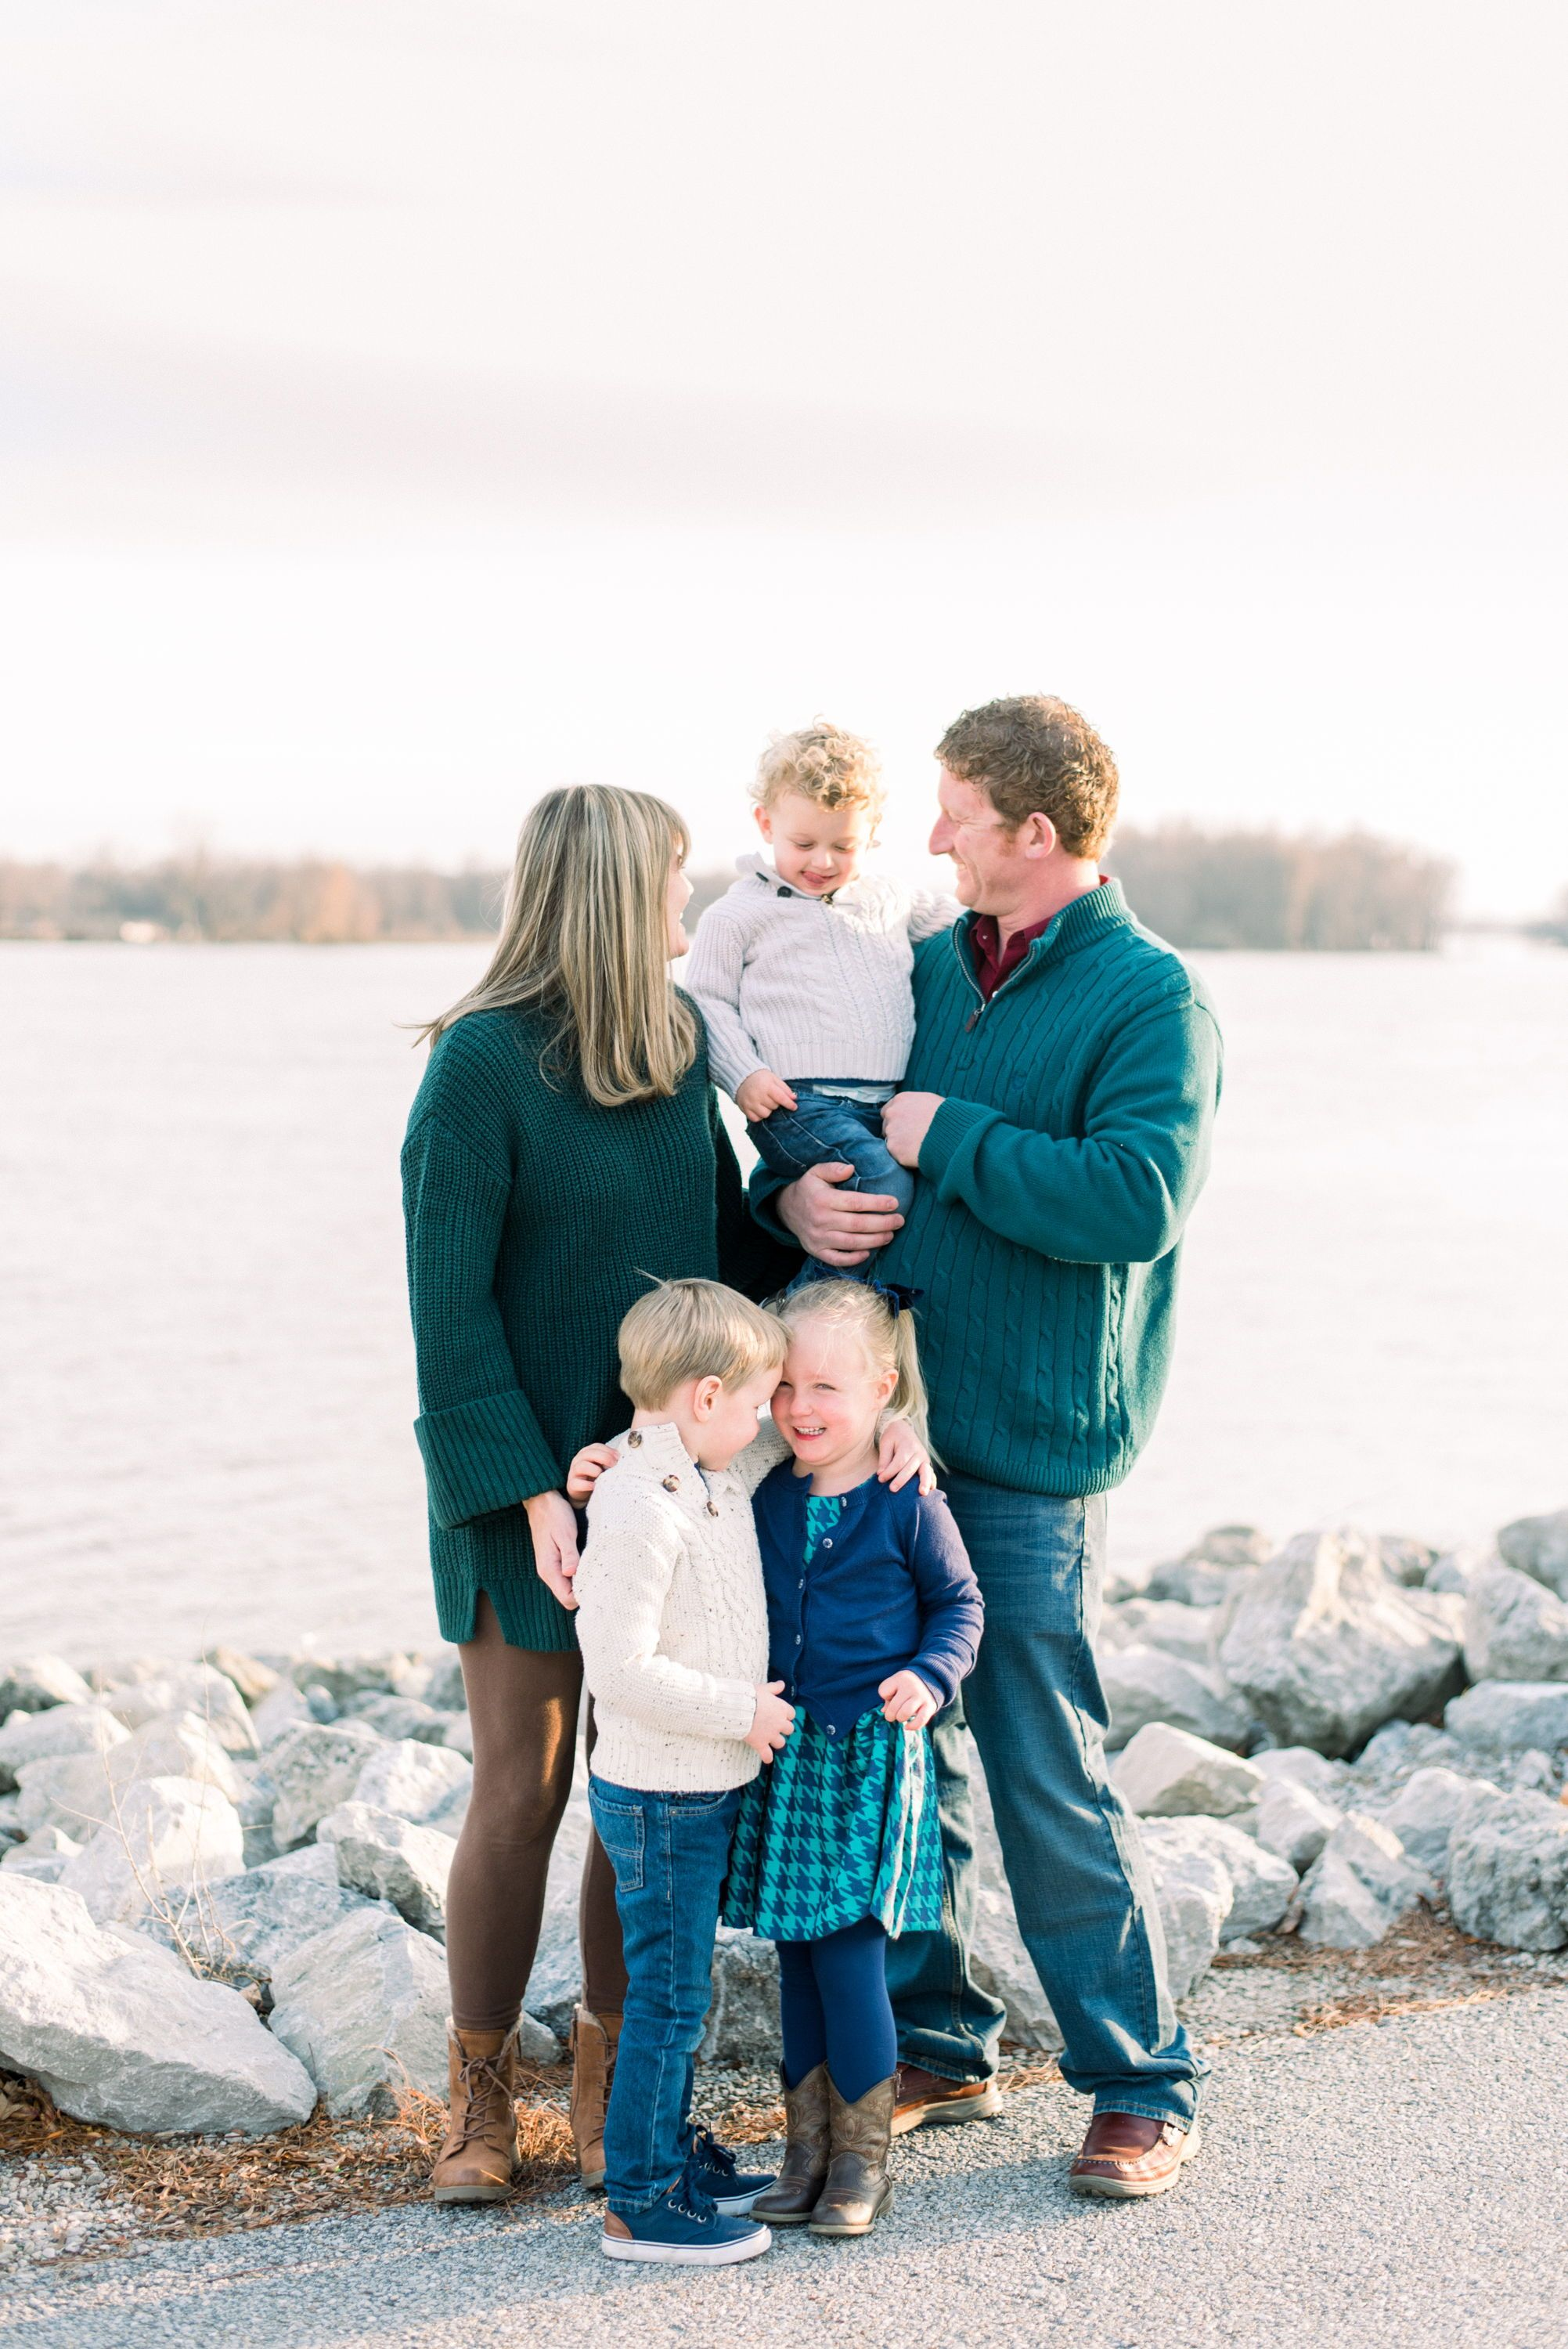 Family pictures at Riverside park in Muscatine Iowa ...